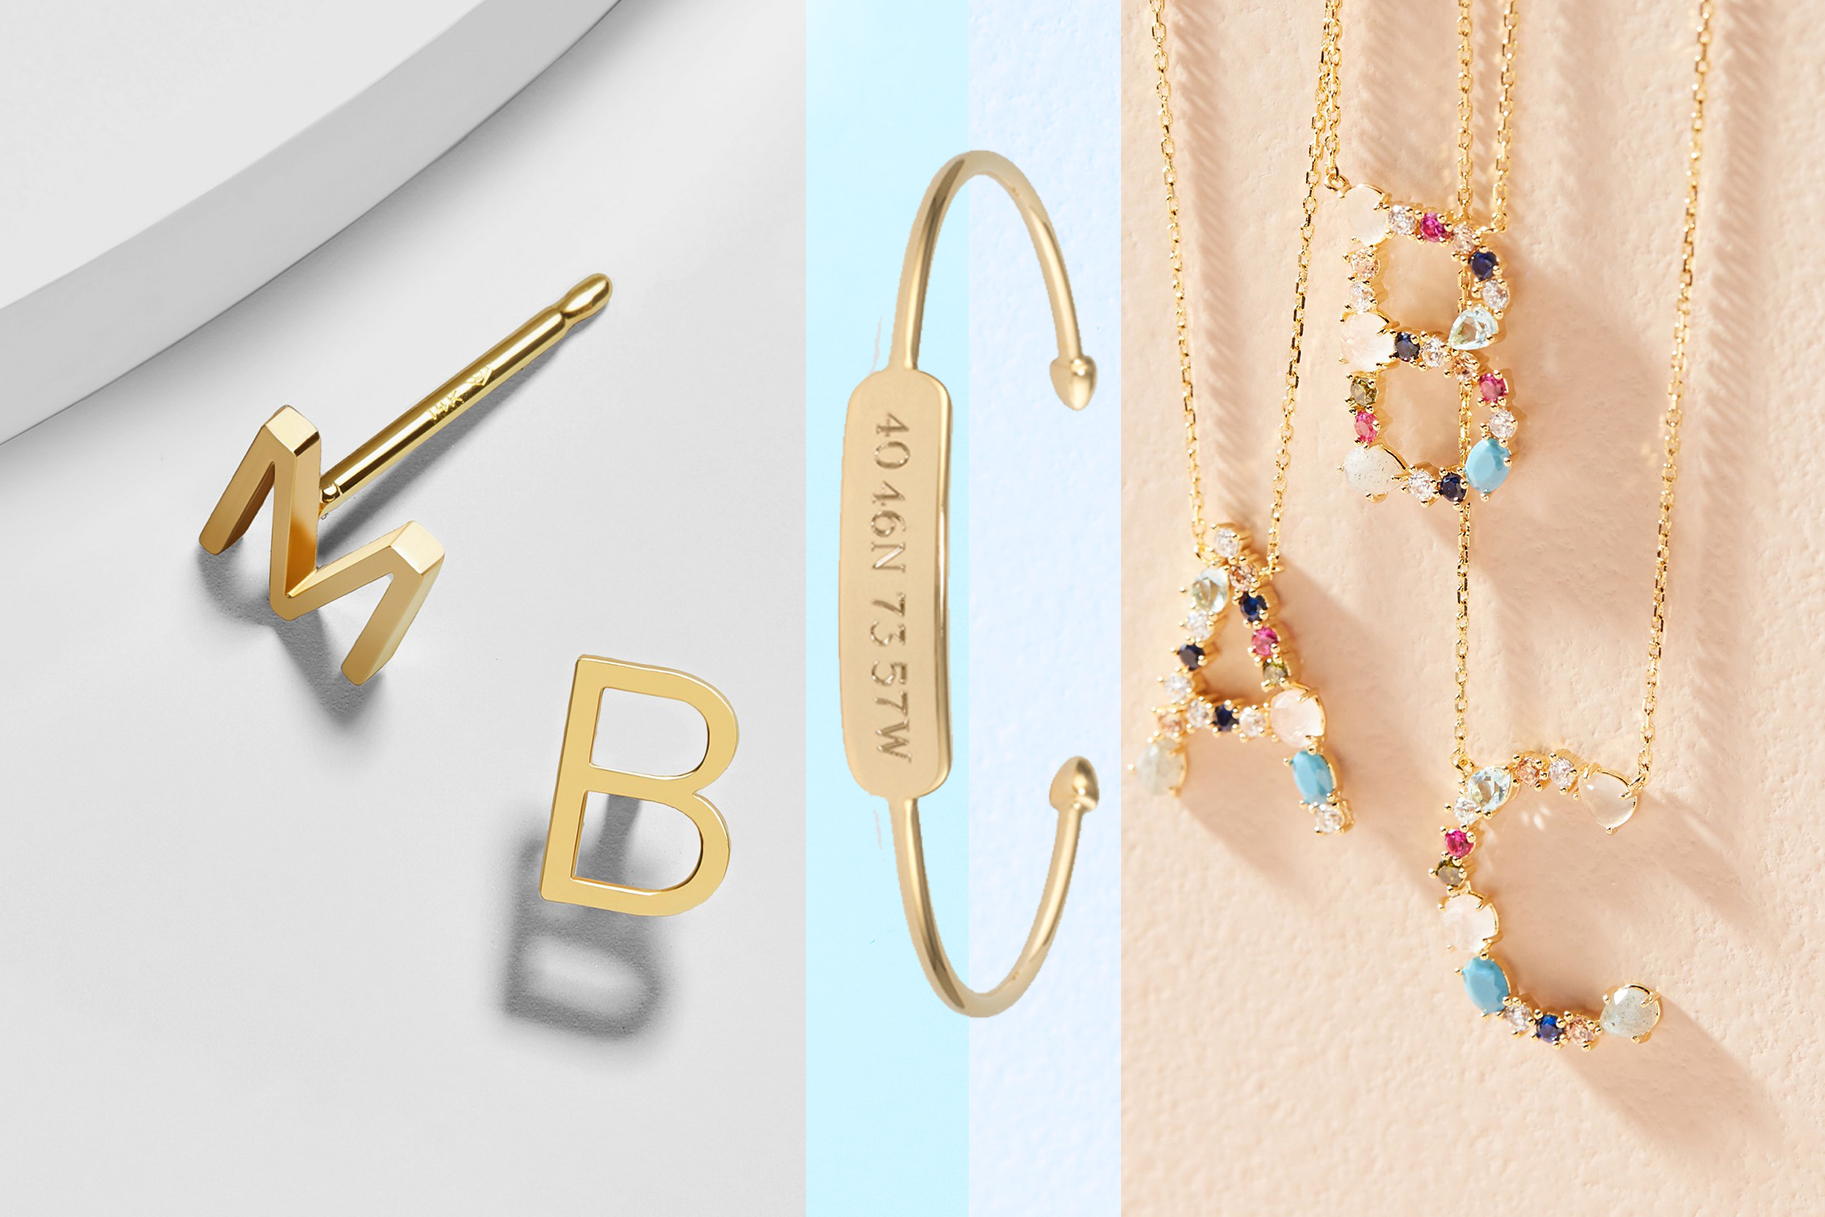 f8cabffd9b564 Personalized Jewelry for Mother's Day: Gift Ideas for Mom   Lookbook